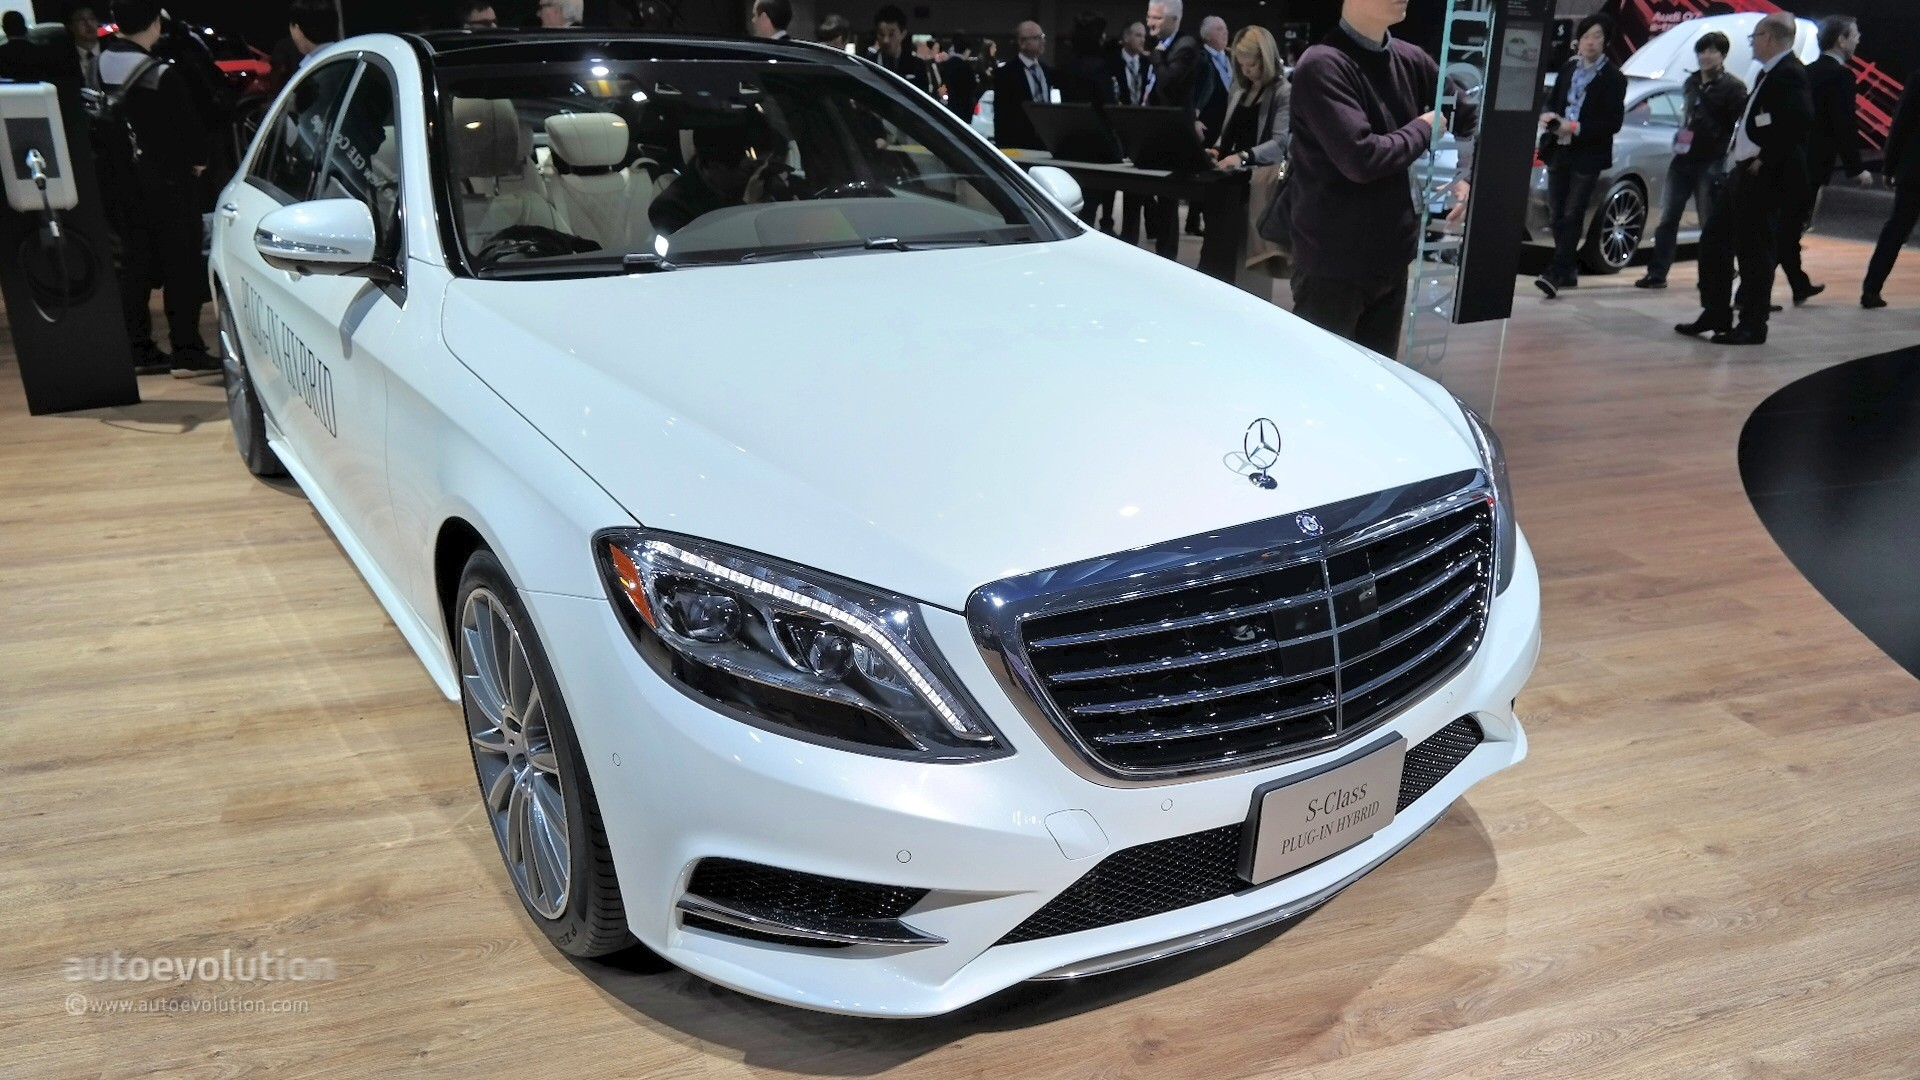 2015 mercedes benz s550 plug in hybrid silently introduced at the detroit auto show live photos. Black Bedroom Furniture Sets. Home Design Ideas